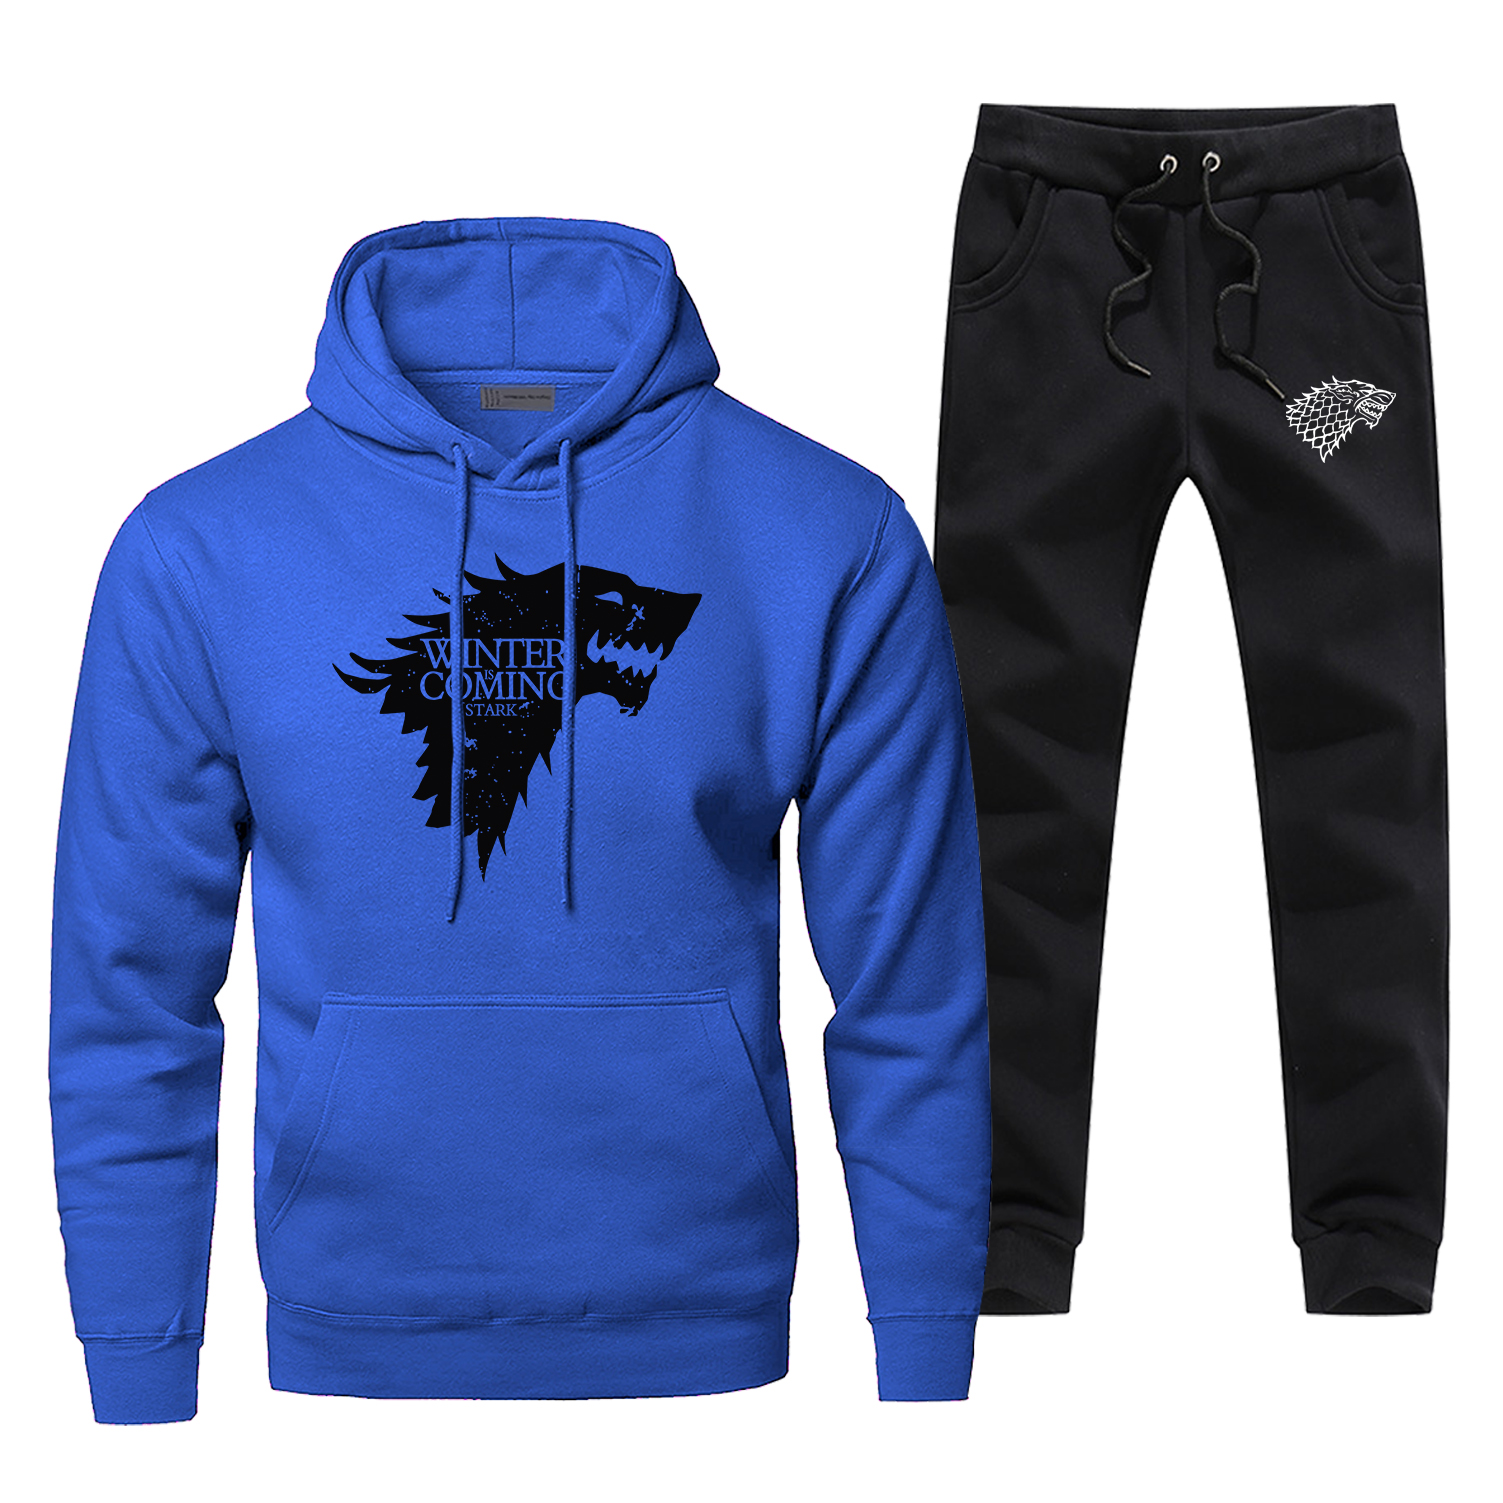 Game Of Thrones Wolf Print Men's Full Suit Tracksuit Winter Is Coming House Stark Sweatpants Fashion TV Show Fleece Warm Hoodies